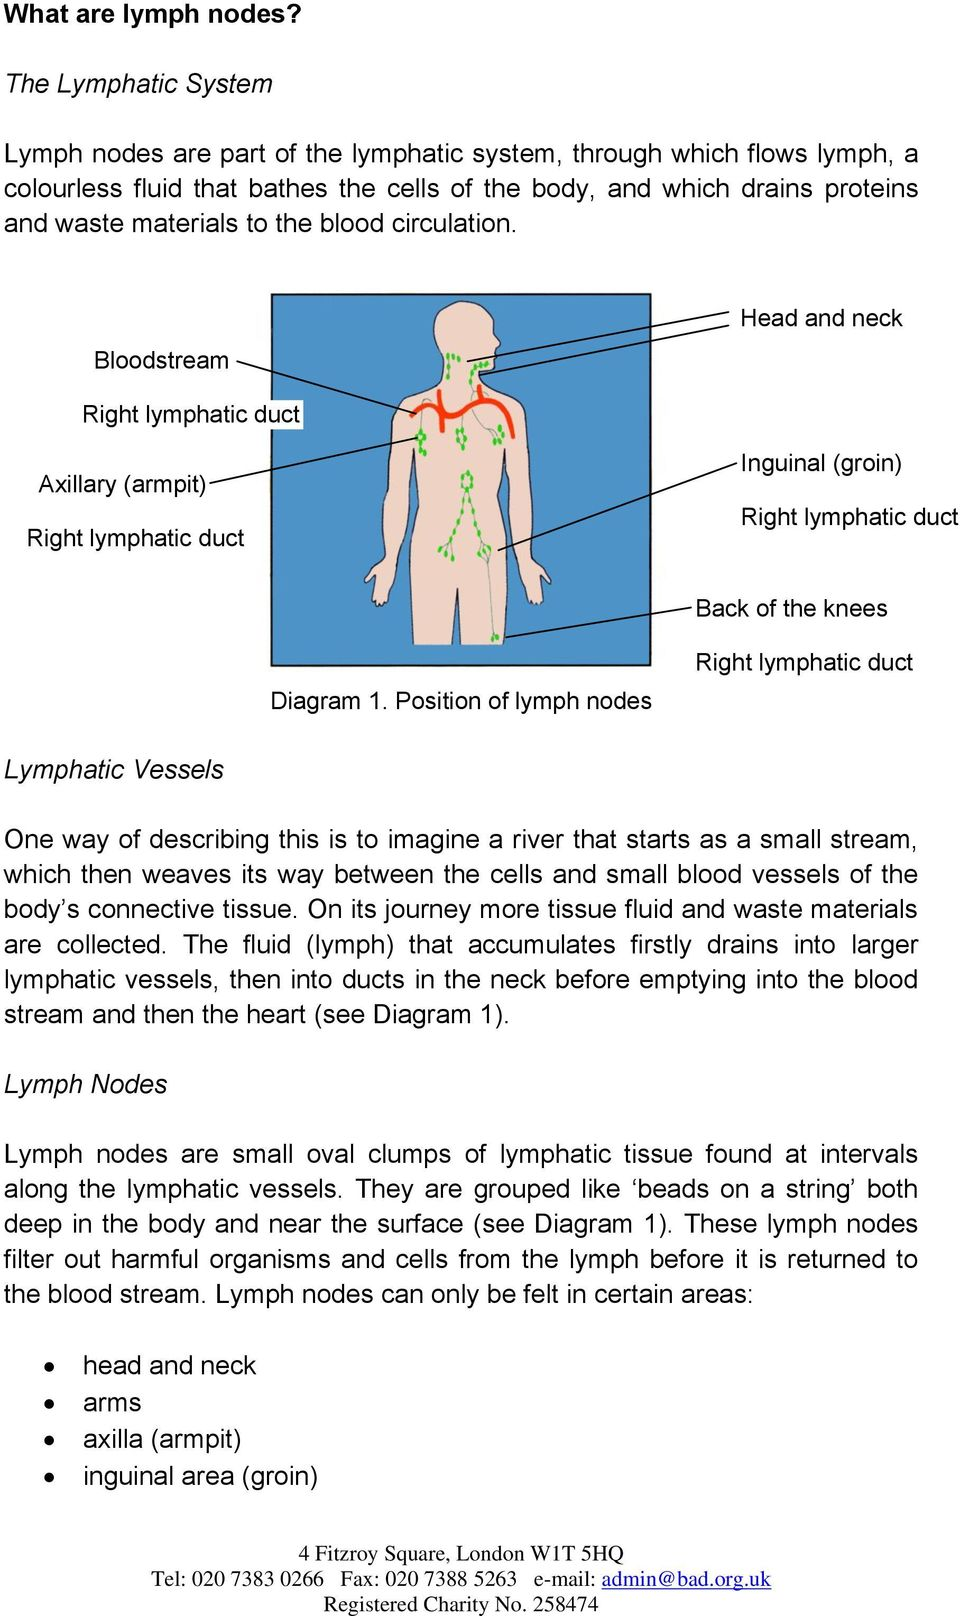 How To Check Your Lymph Nodes Pdf Related Pictures Full Body Diagram Showing The Lymphatic Blood Circulation Bloodstream Head And Neck Axillary Armpit Inguinal Groin 3 Back Of Knees Usually